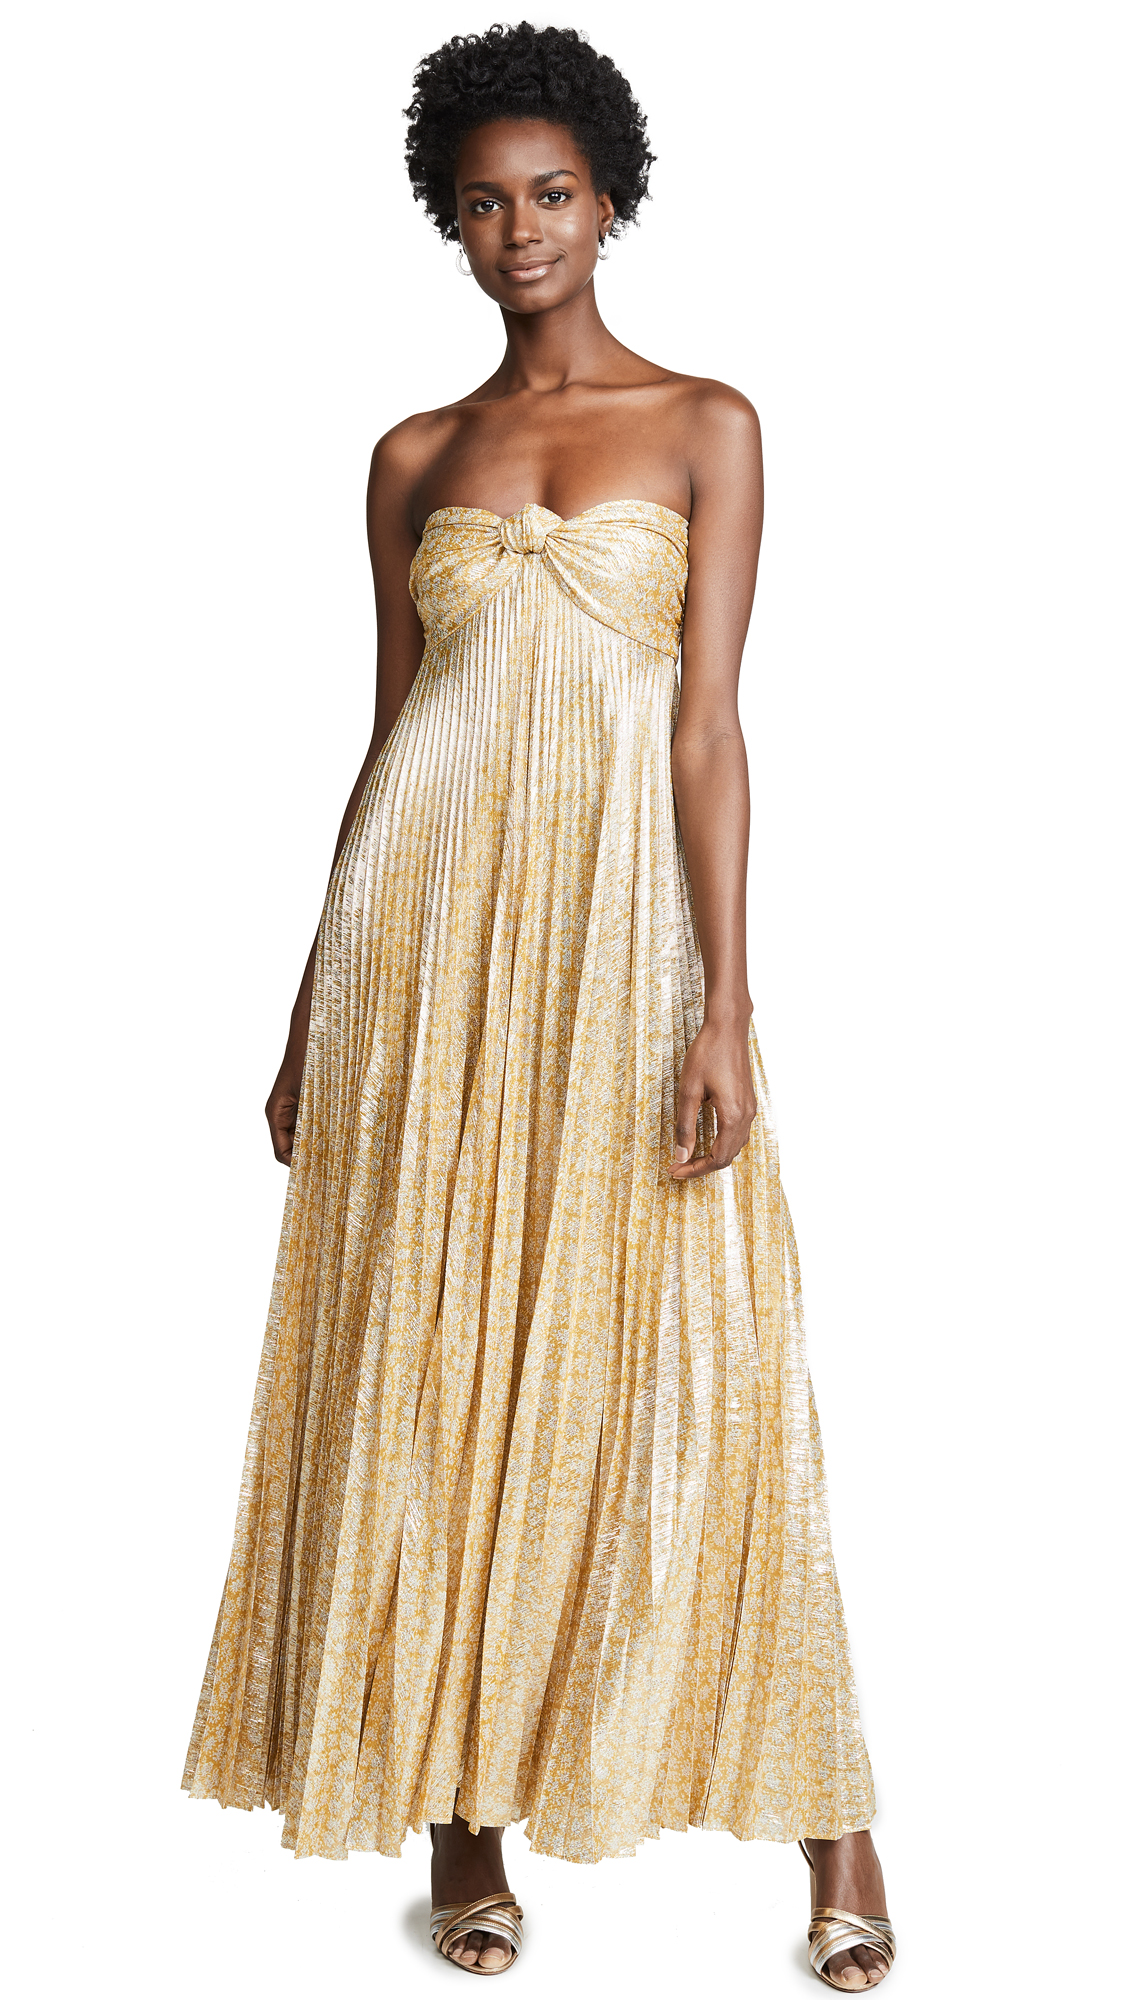 Alexis Joya Dress - Gold Lame